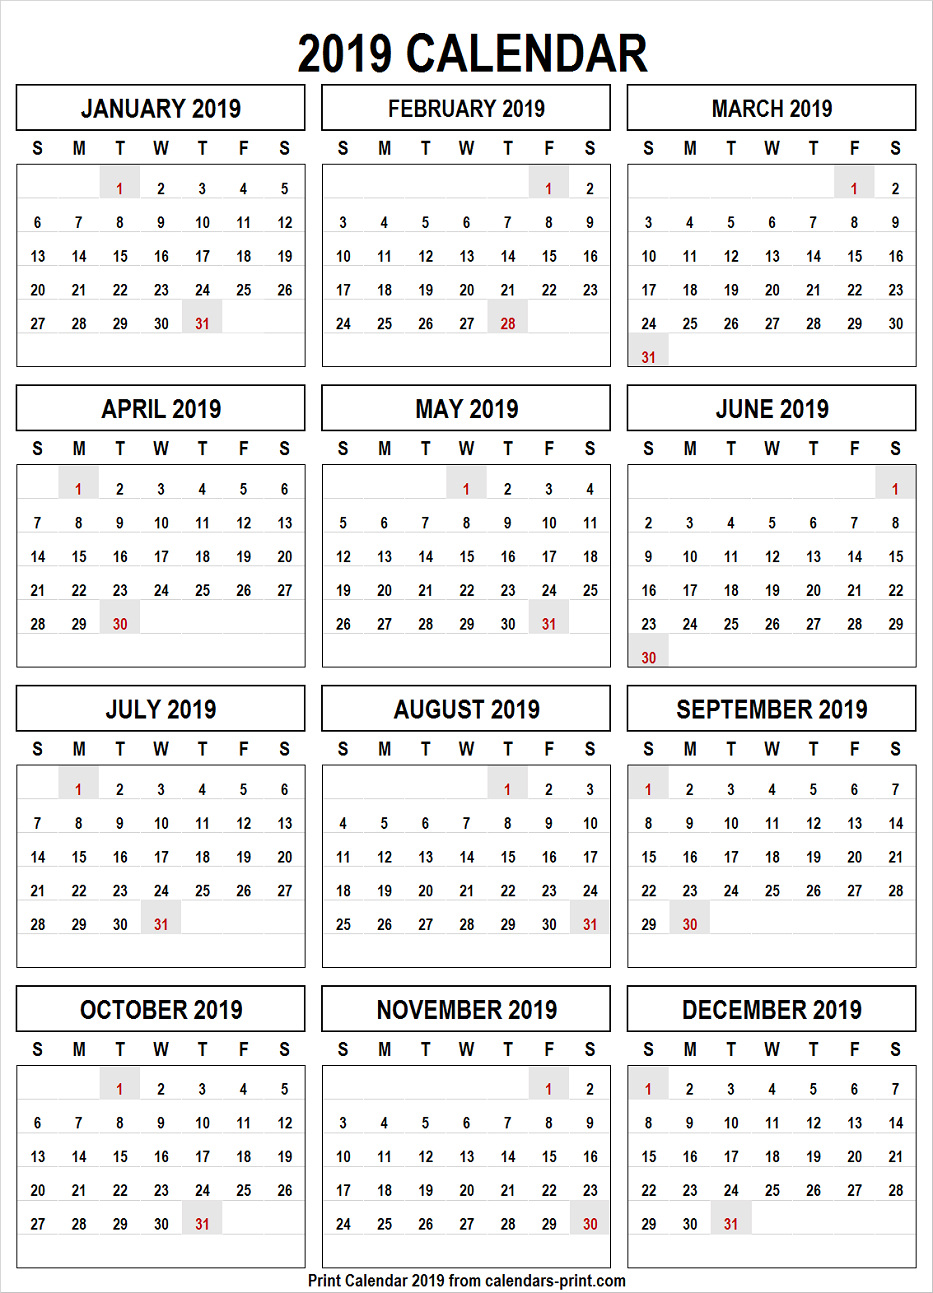 Calendar 2019 Png Free Download Template With Notes | Holidays Calendar 2019 Download